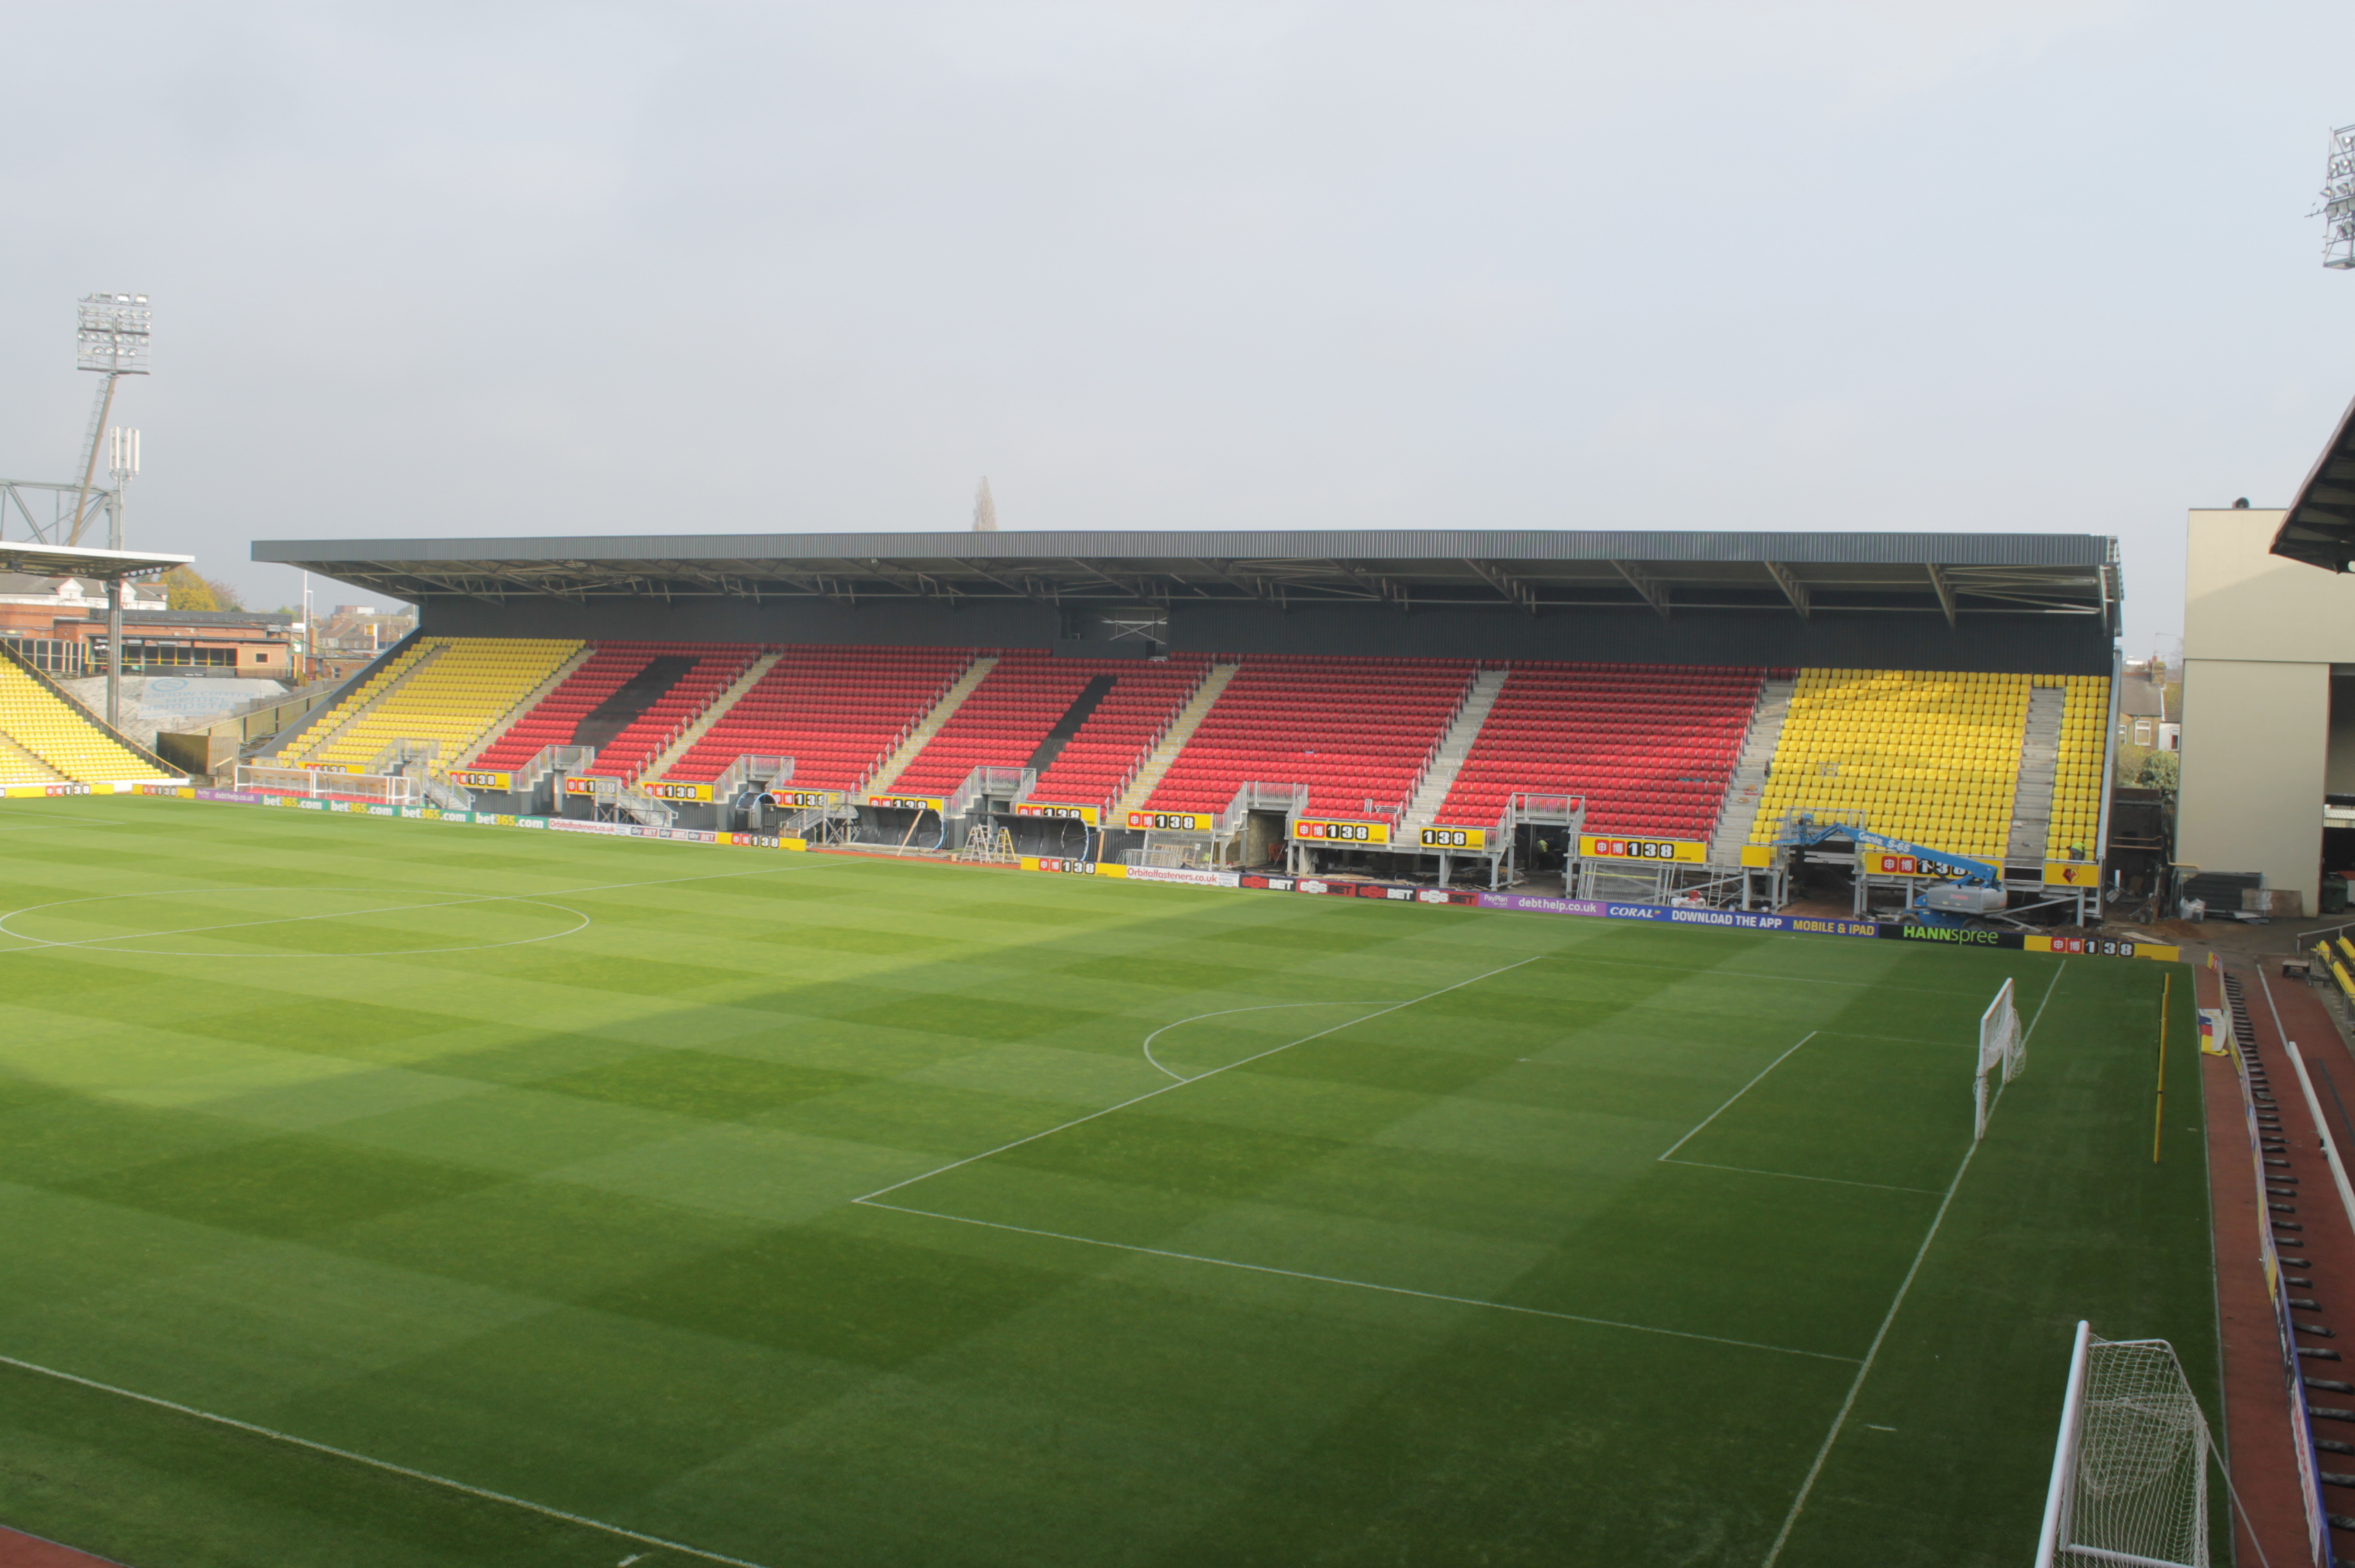 The completed Sir Elton John Stand at Watford Football Club's Vicarage Road